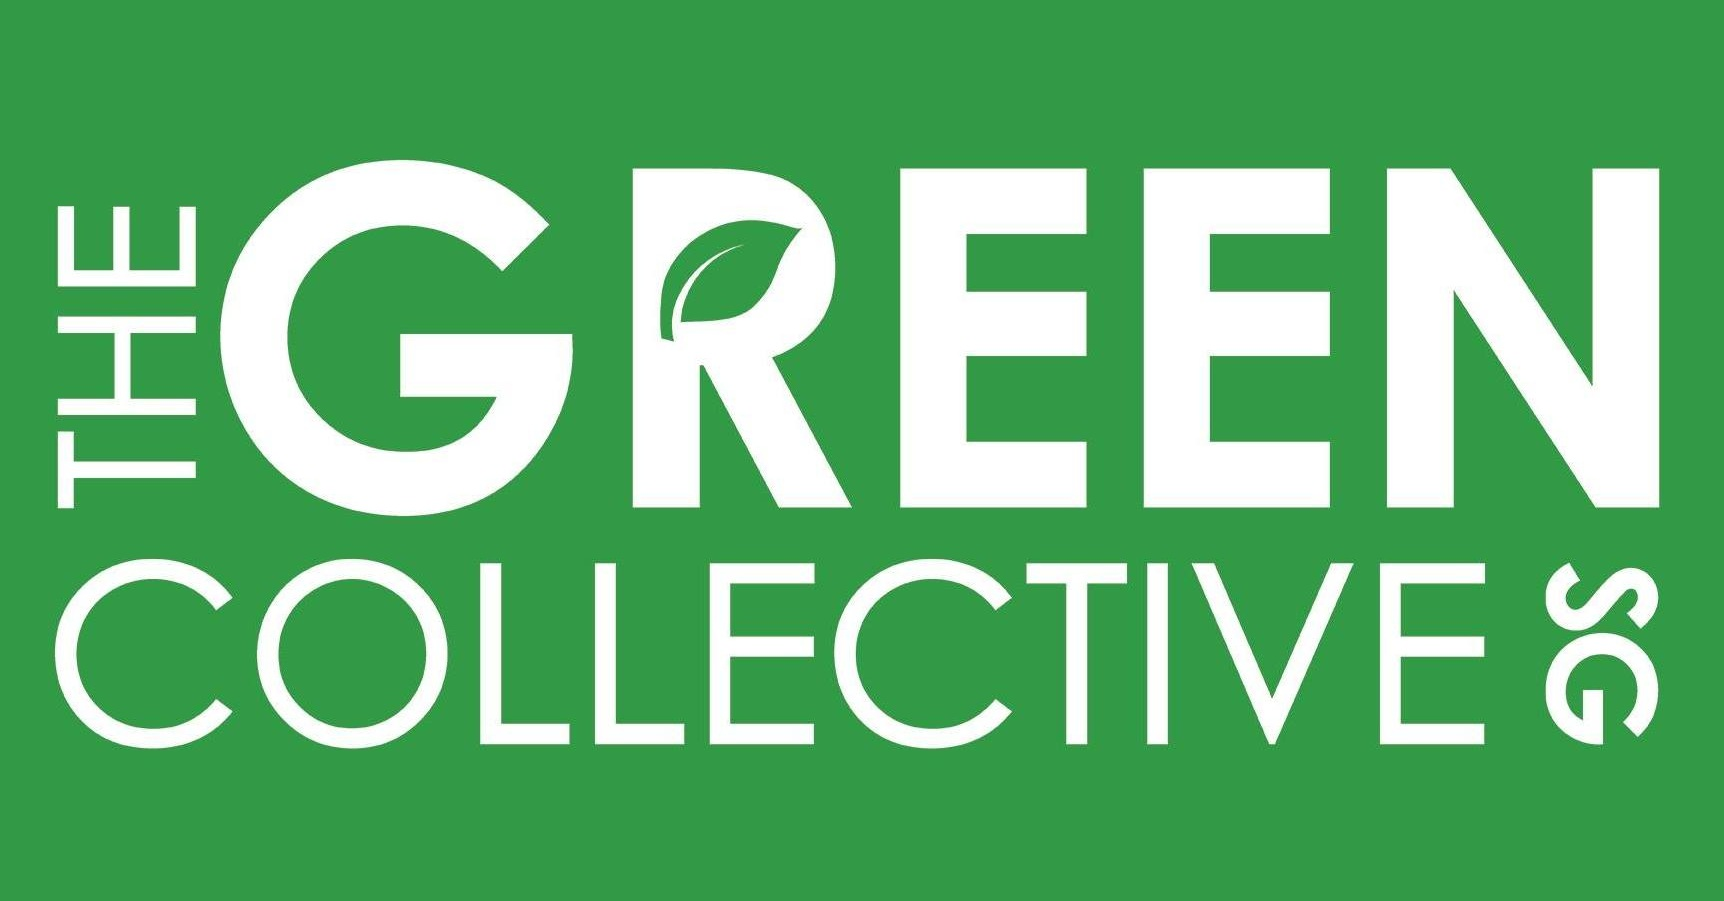 Singapore's first collective - The Green Collective SG is Singapore's first collective of sustainable brands showcasing a range of eco friendly and socially conscious products. Kickstarted in April 2018, The Green Collective works with consumers as well as businesses to reduce their footprint through its retail concept, workshops as well as advisory services.